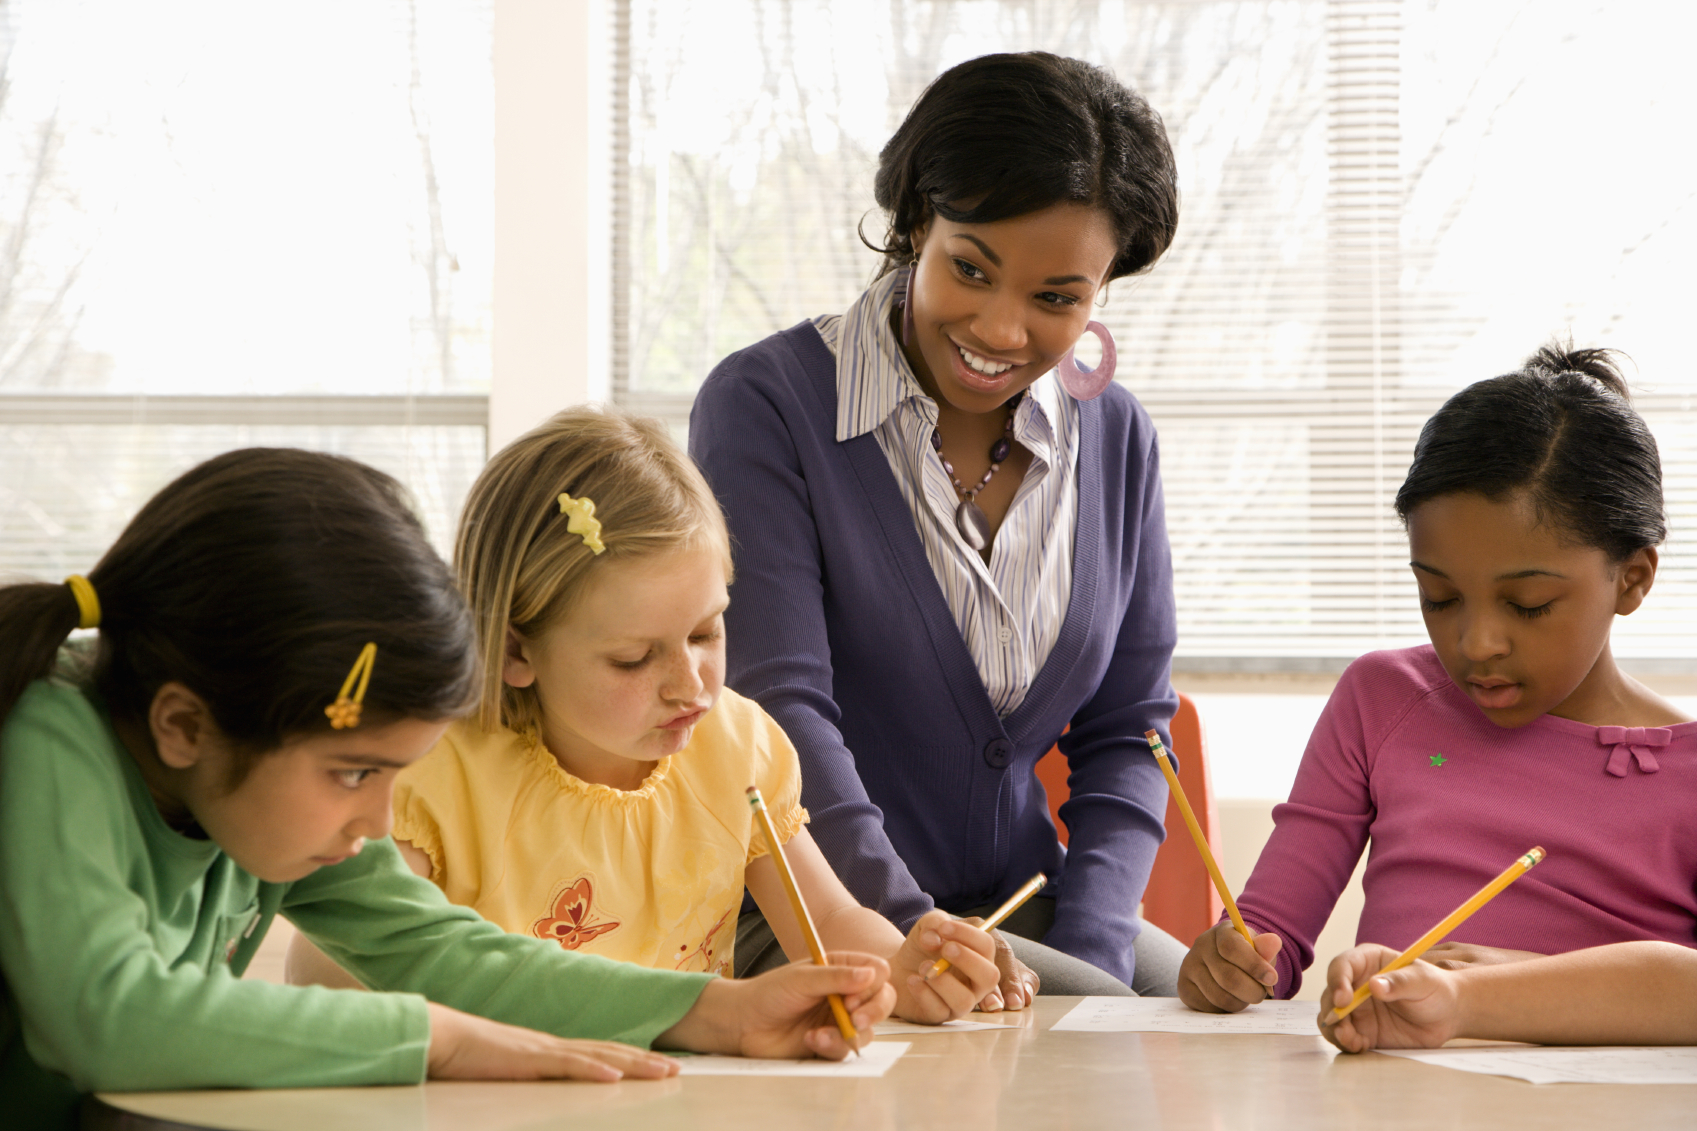 A student collaborating with elementary school students. (stock image)